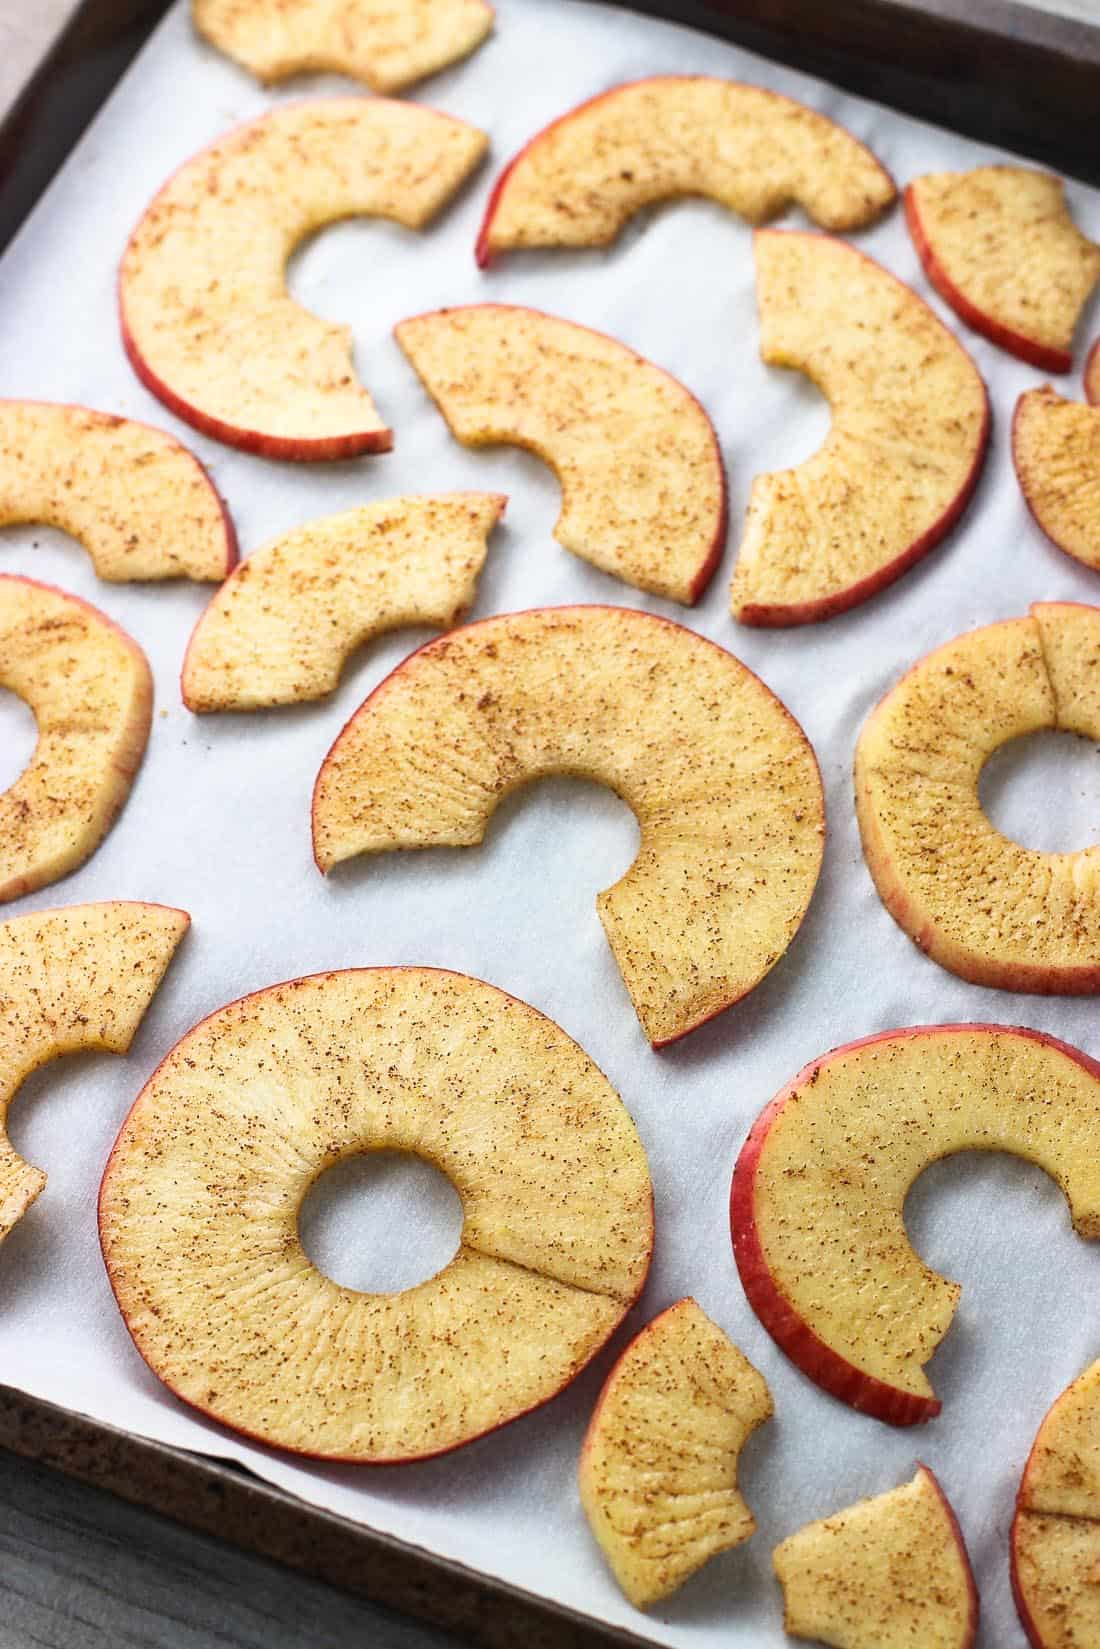 Raw spiralized apple rings sprinkled with cinnamon sugar on a parchment paper-lined rimmed metal baking sheet